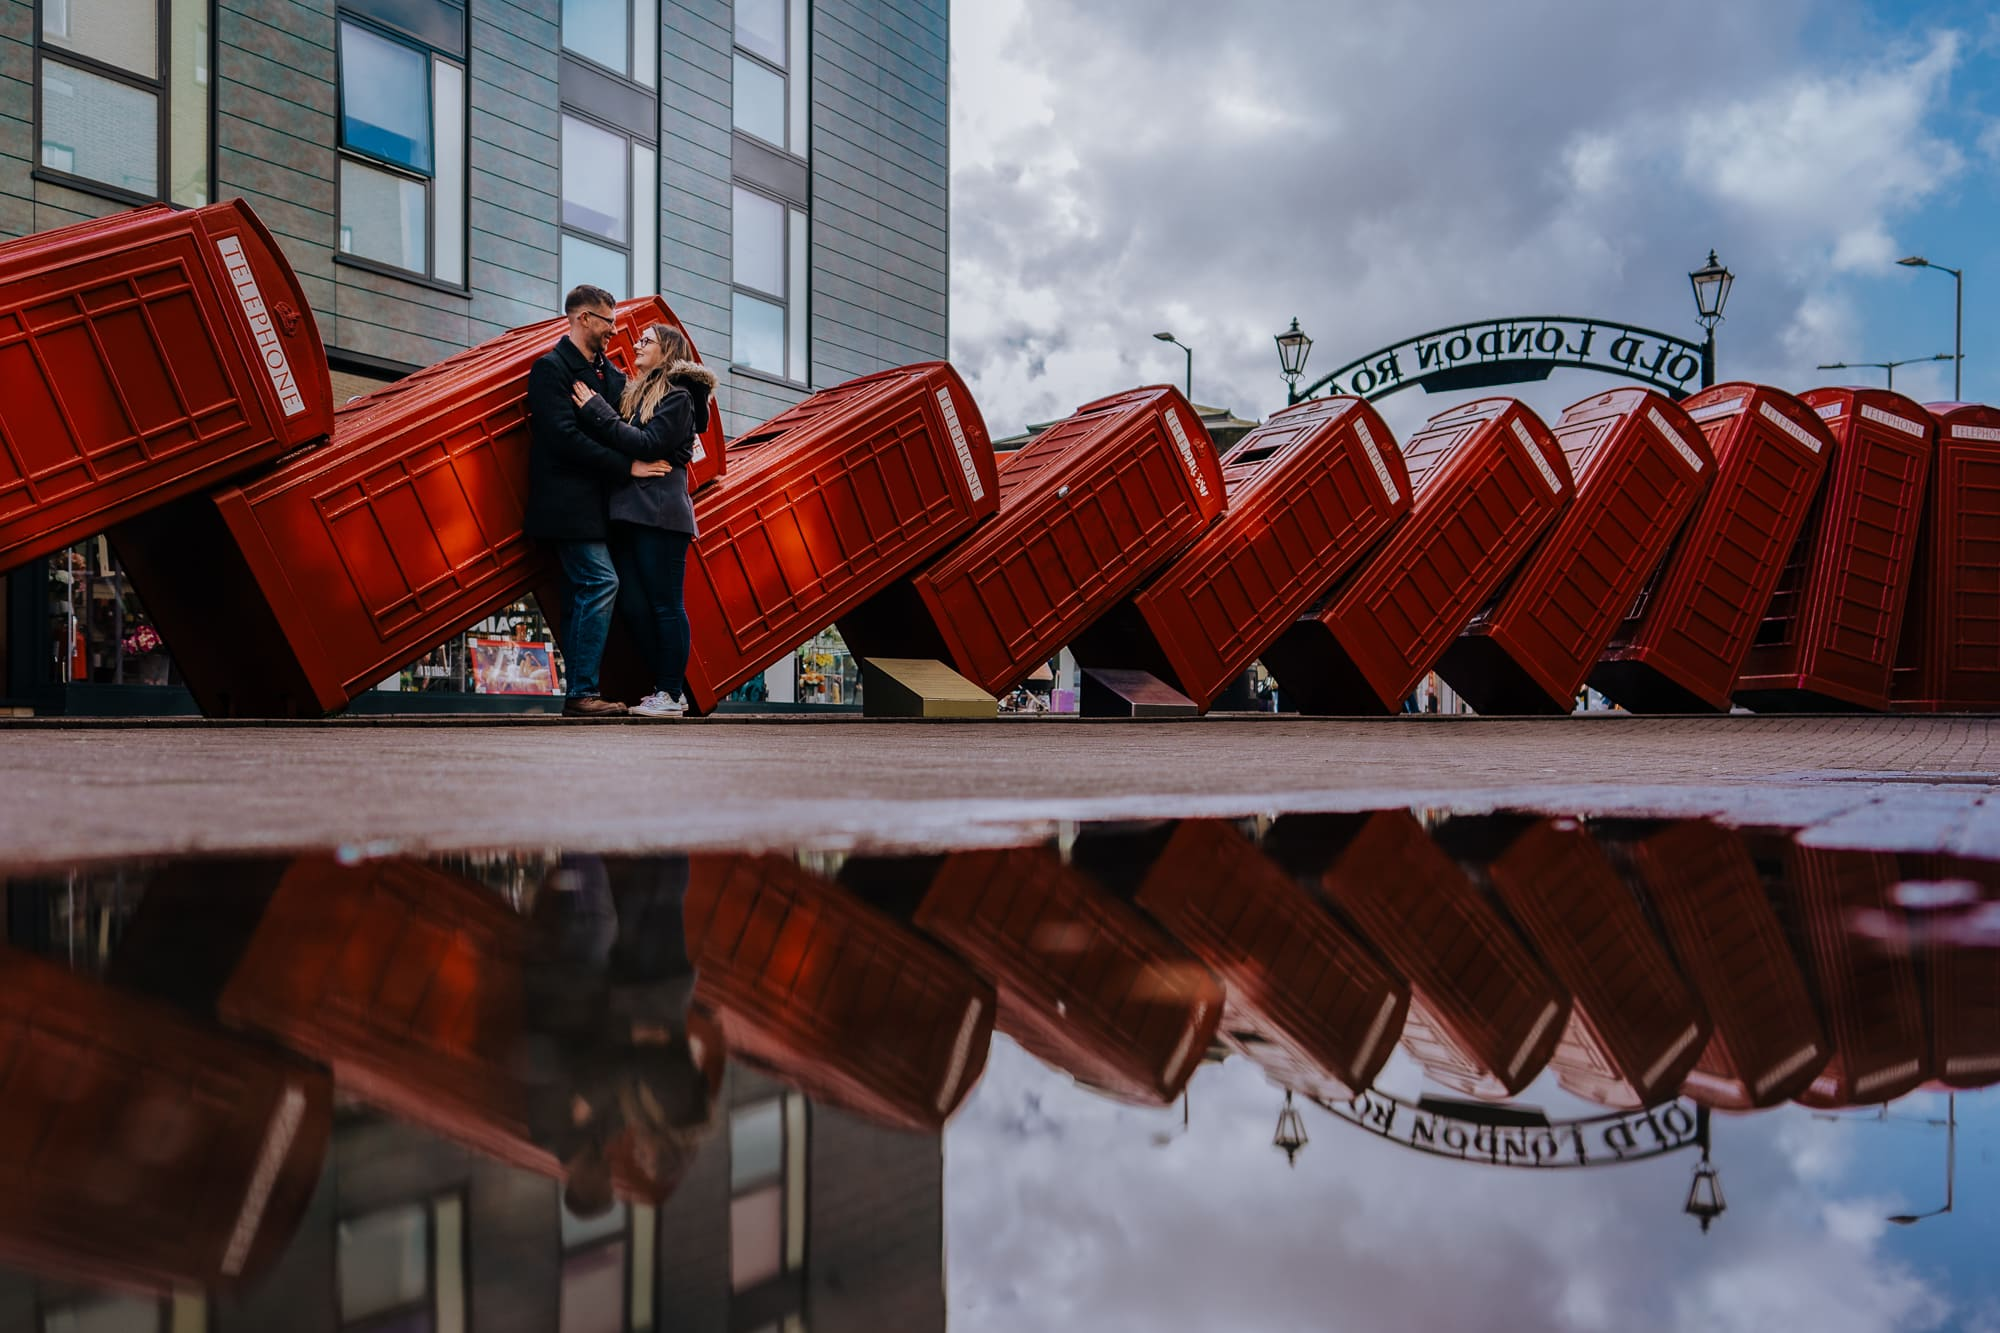 couple pose in front of out of order sculpture kingston upon thames